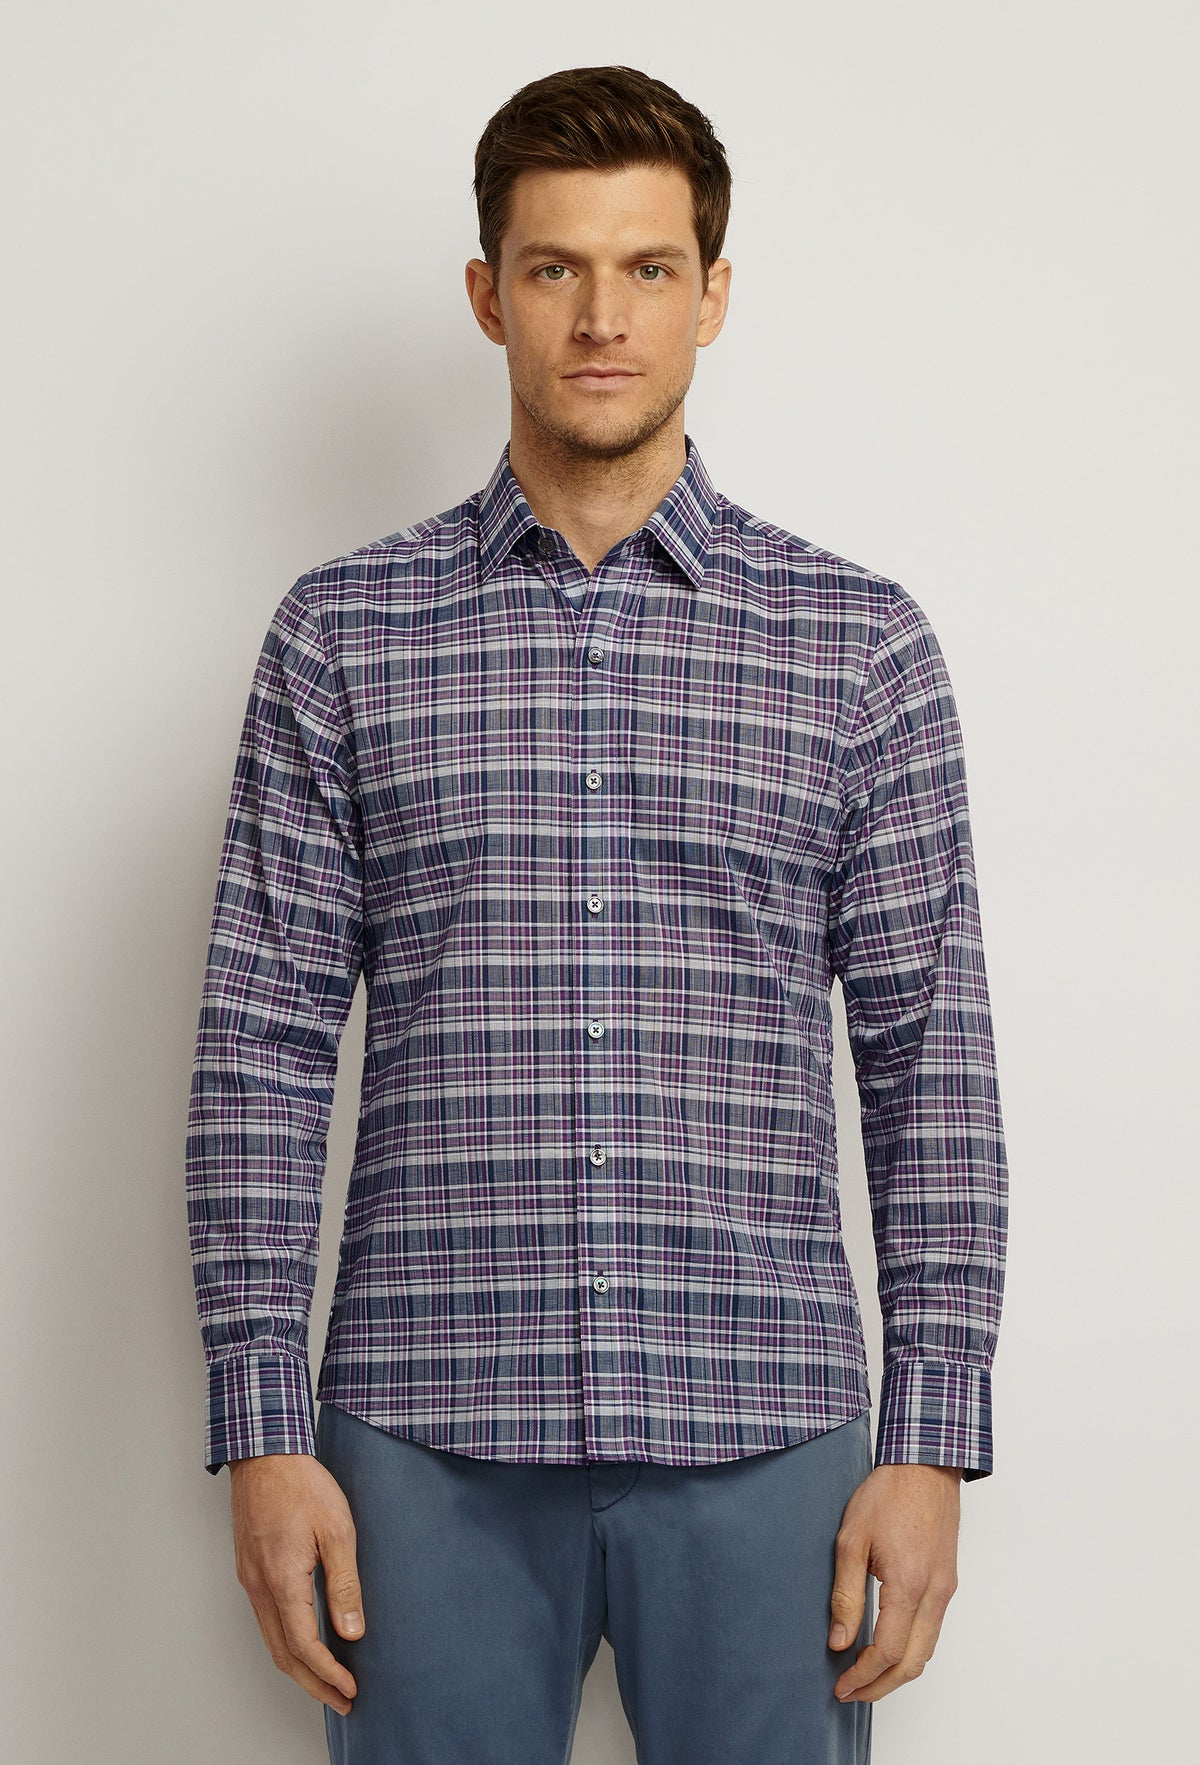 ZACHARY-PRELL-Caro-ShirtsModern-Menswear-New-Dress-Code